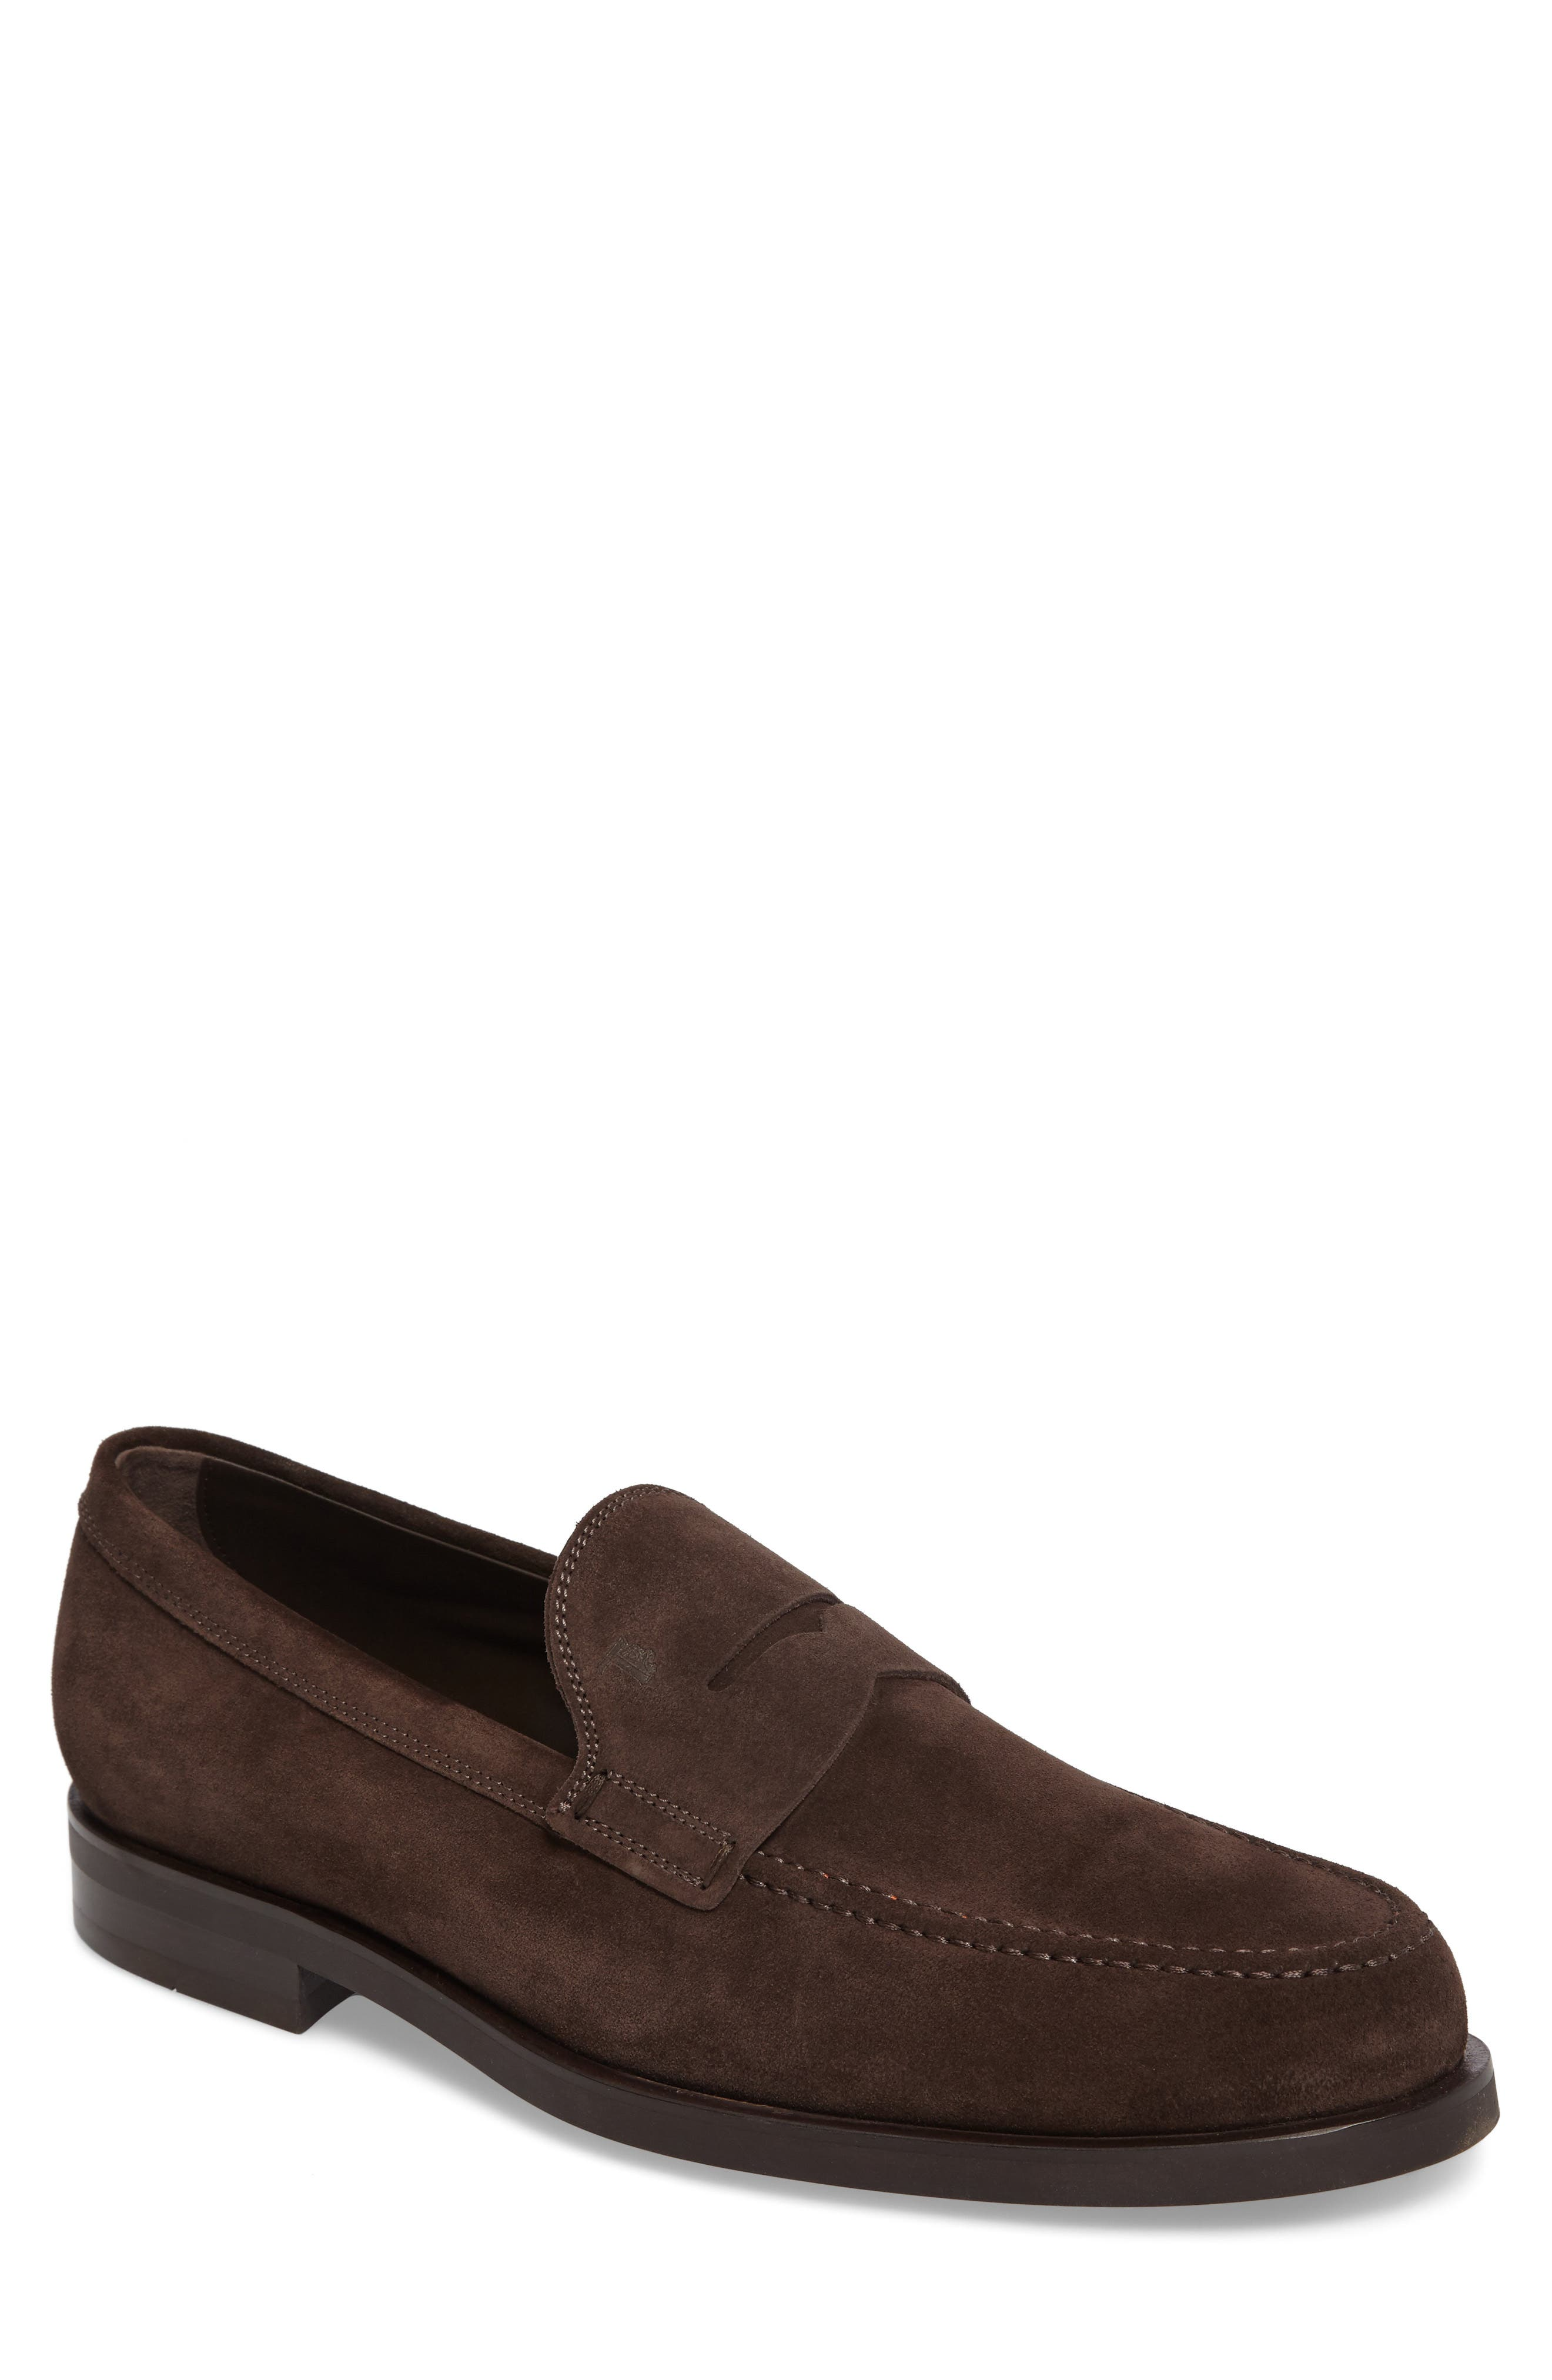 Penny Loafer,                             Main thumbnail 1, color,                             205